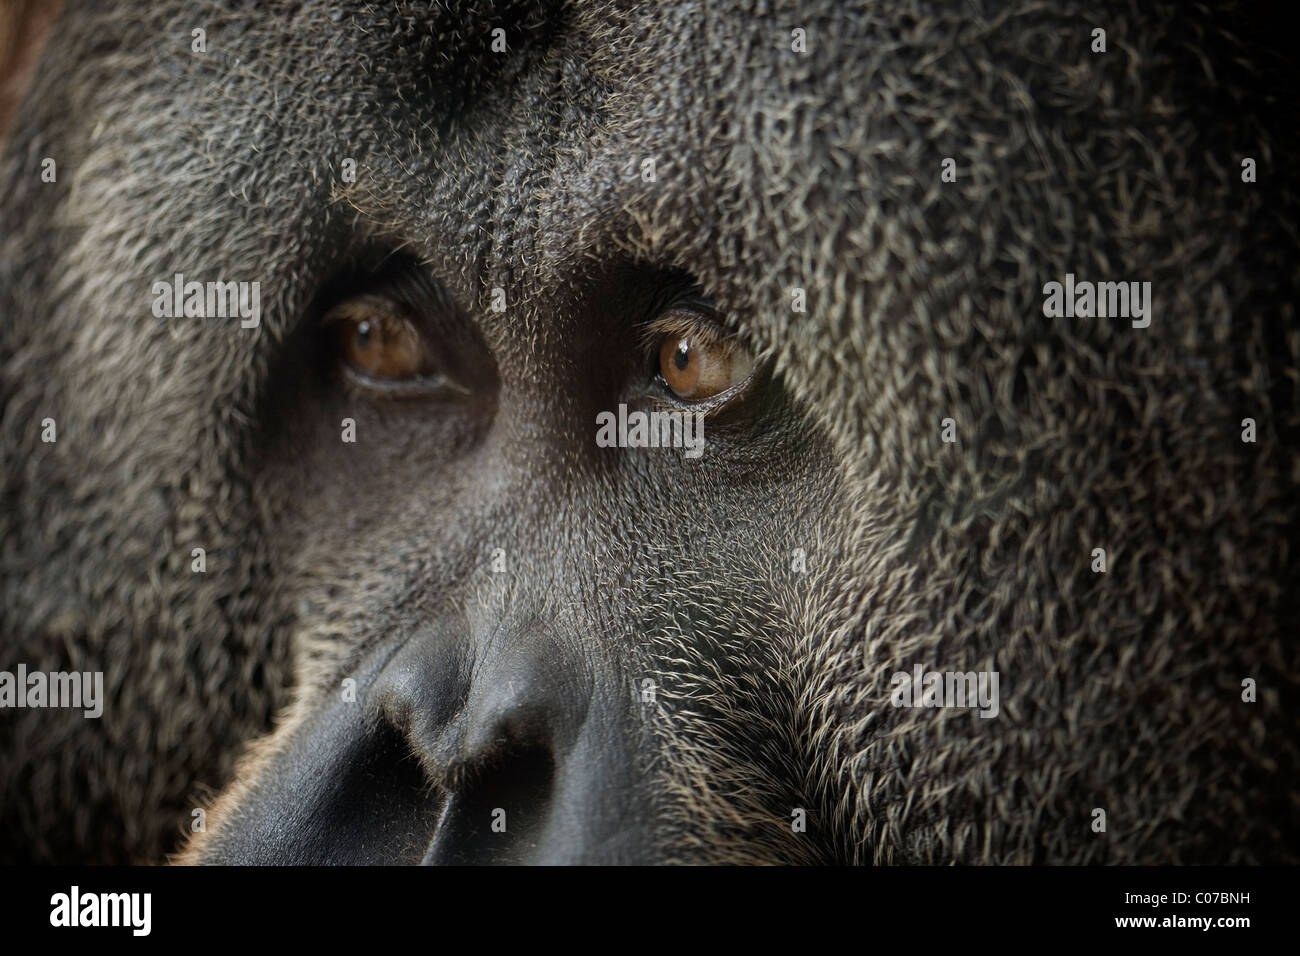 Close up of Male Orangutan - Stock Image